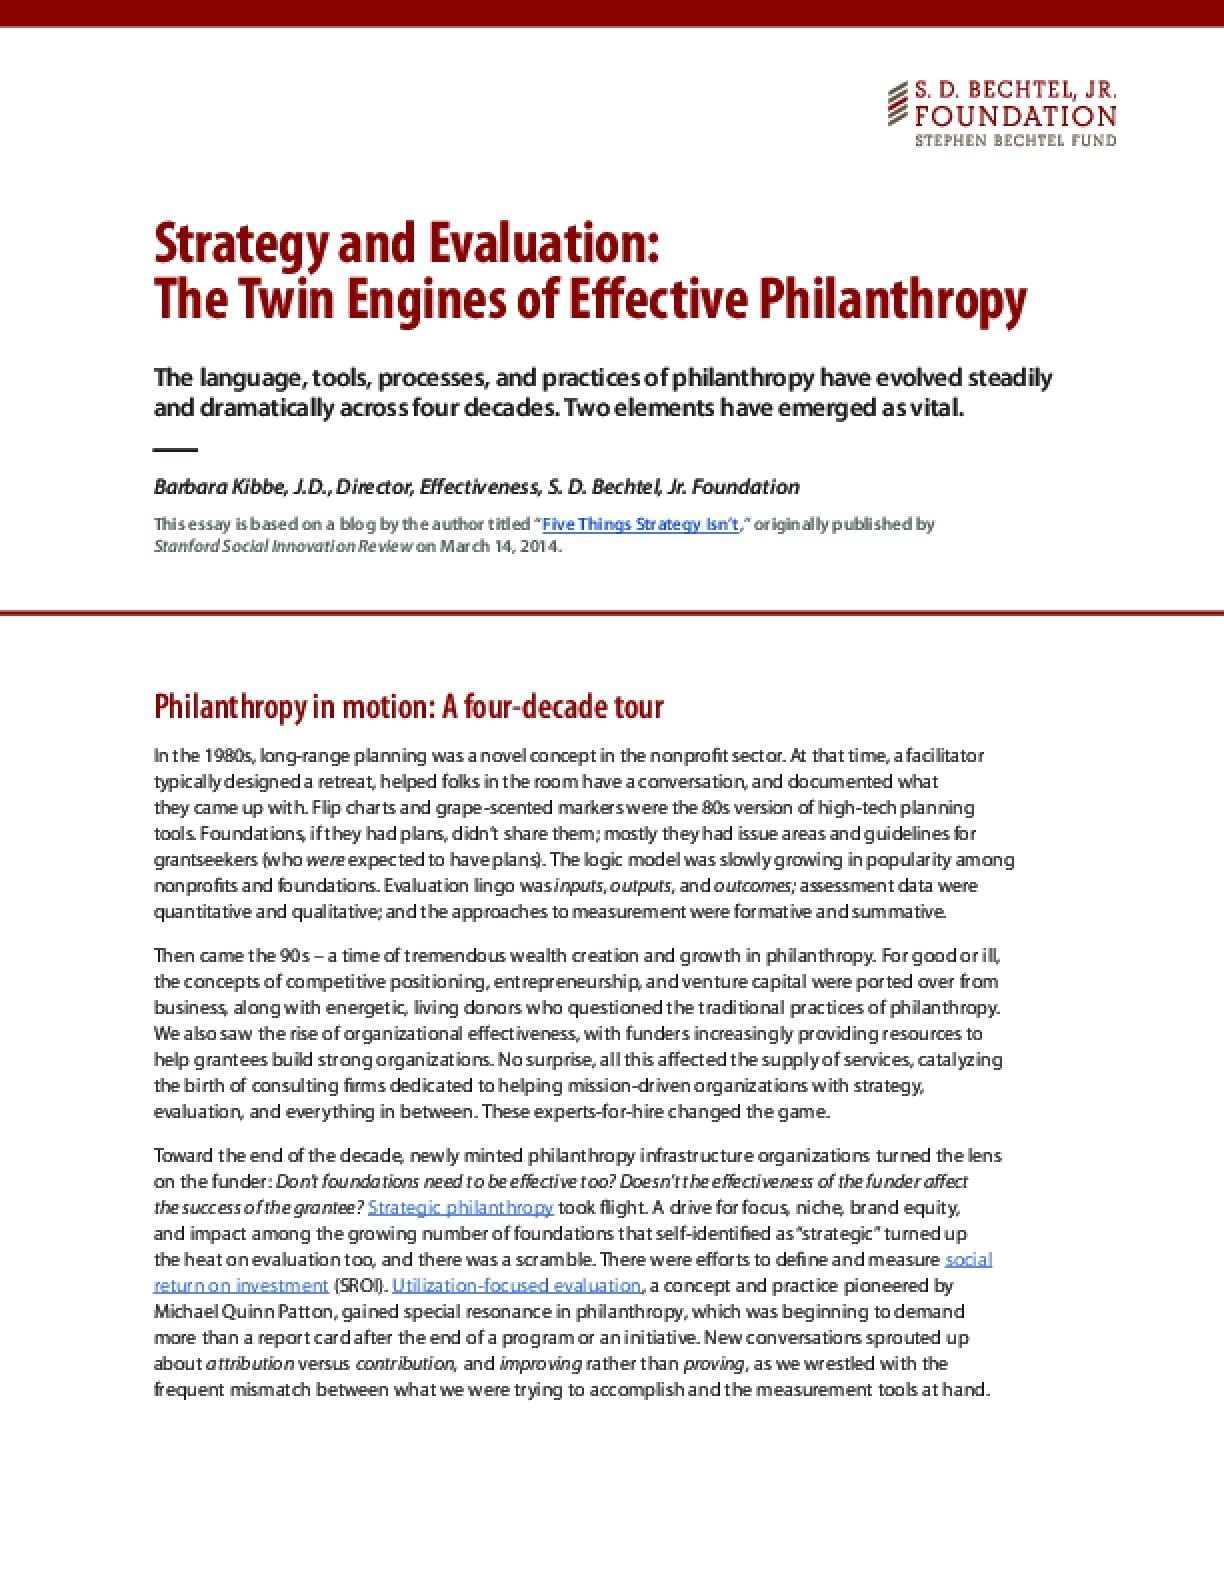 Strategy and Evaluation: The Twin Engines of Effective Philanthropy